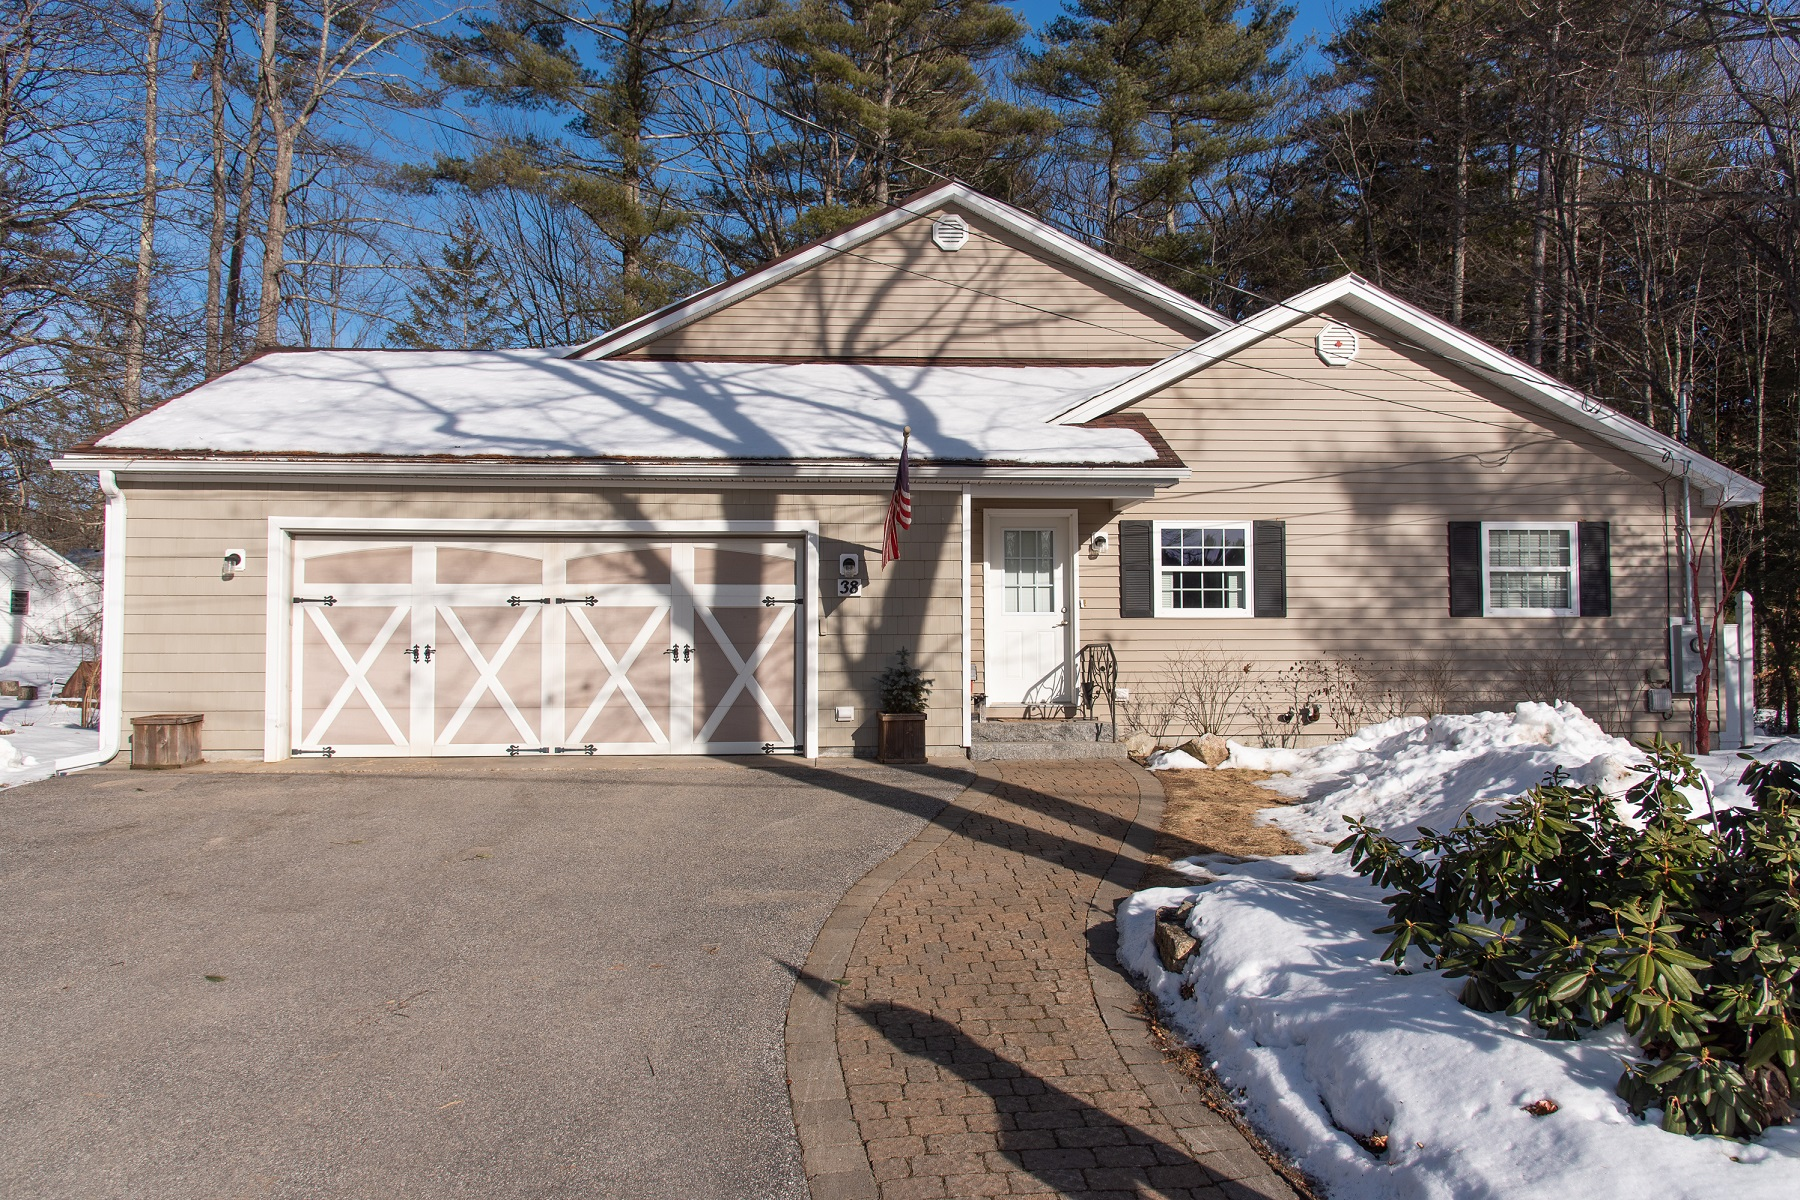 Single Family Homes for Sale at Ranch with Curb Appeal 38 Circle Drive Meredith, New Hampshire 03253 United States